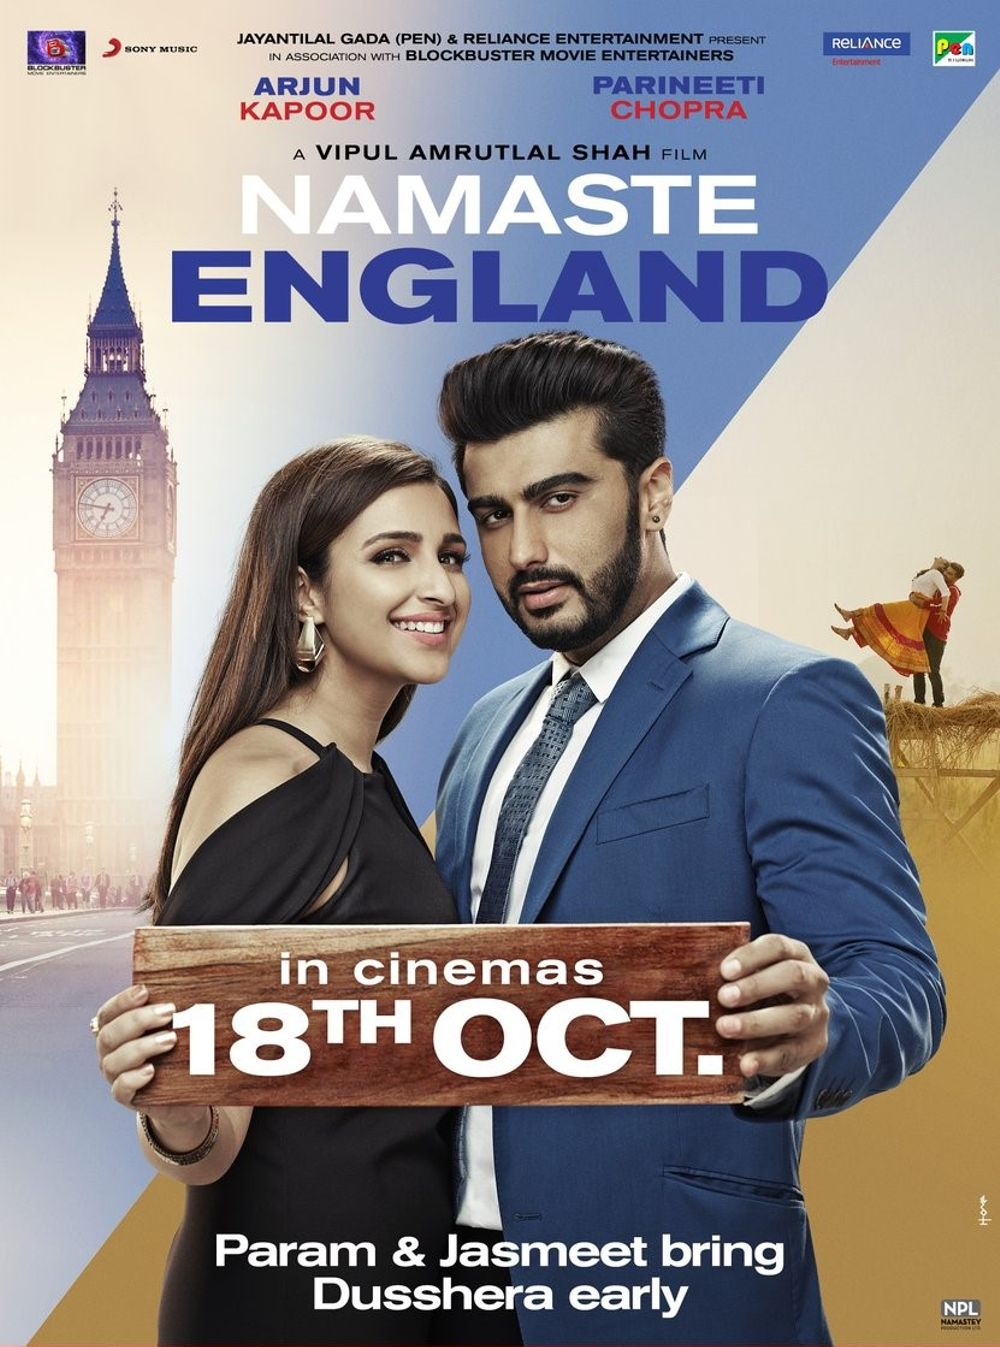 Namaste England Movie Review